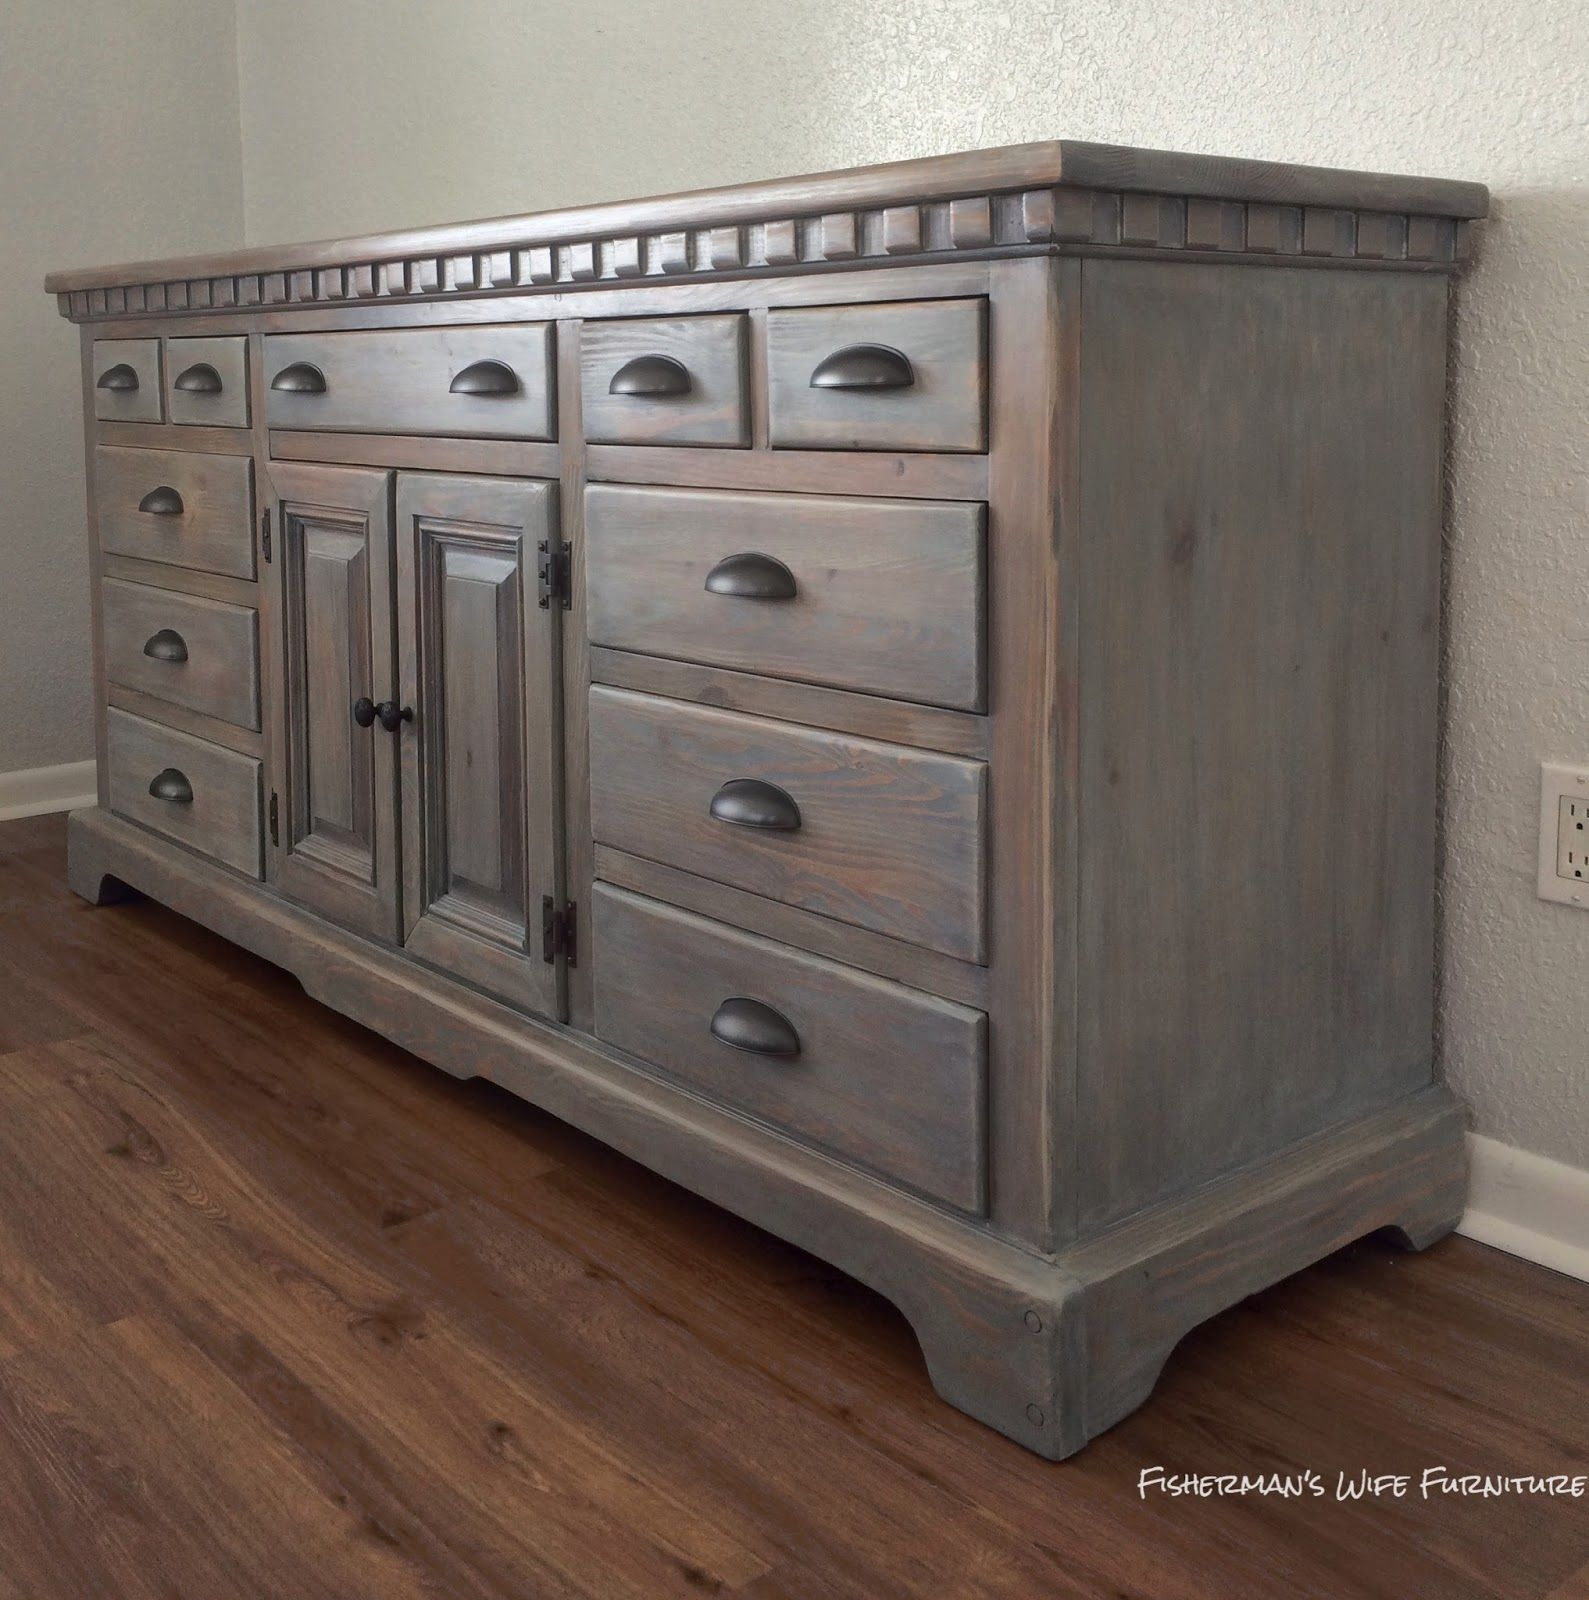 Distressed Bedroom Sets Bedroom Cupboards With Mirror Sliding Doors Bedroom Colour As Per Vastu Shabby Chic Bedroom Sets: For This Finished I Used Rust-Oleum Weathered Gray Stain